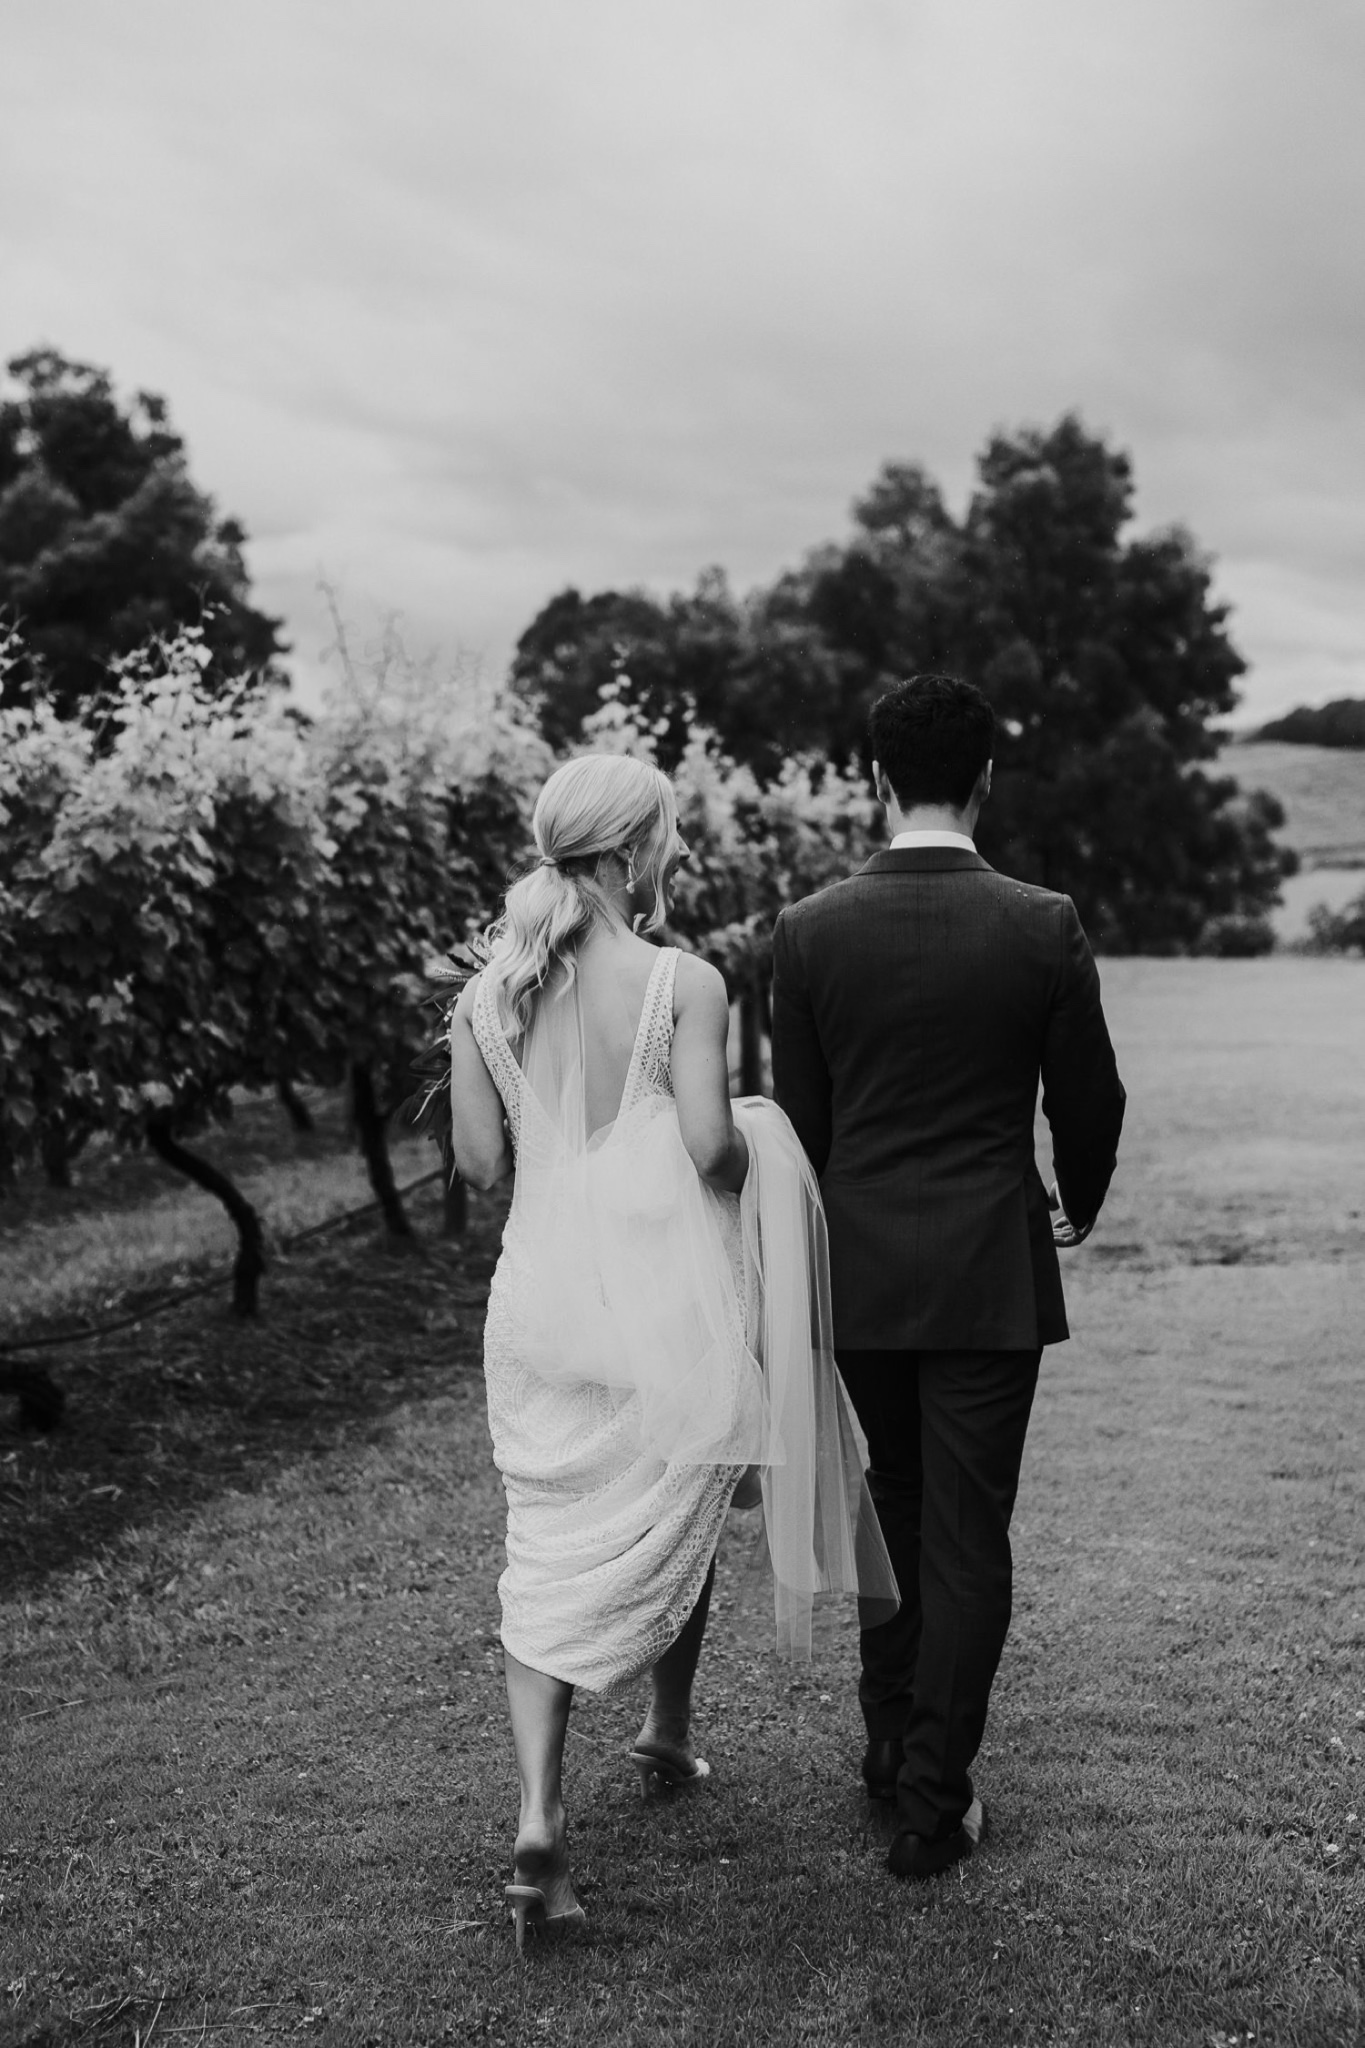 Immerse Yarra Valley Winery Wedding Photography67.jpg